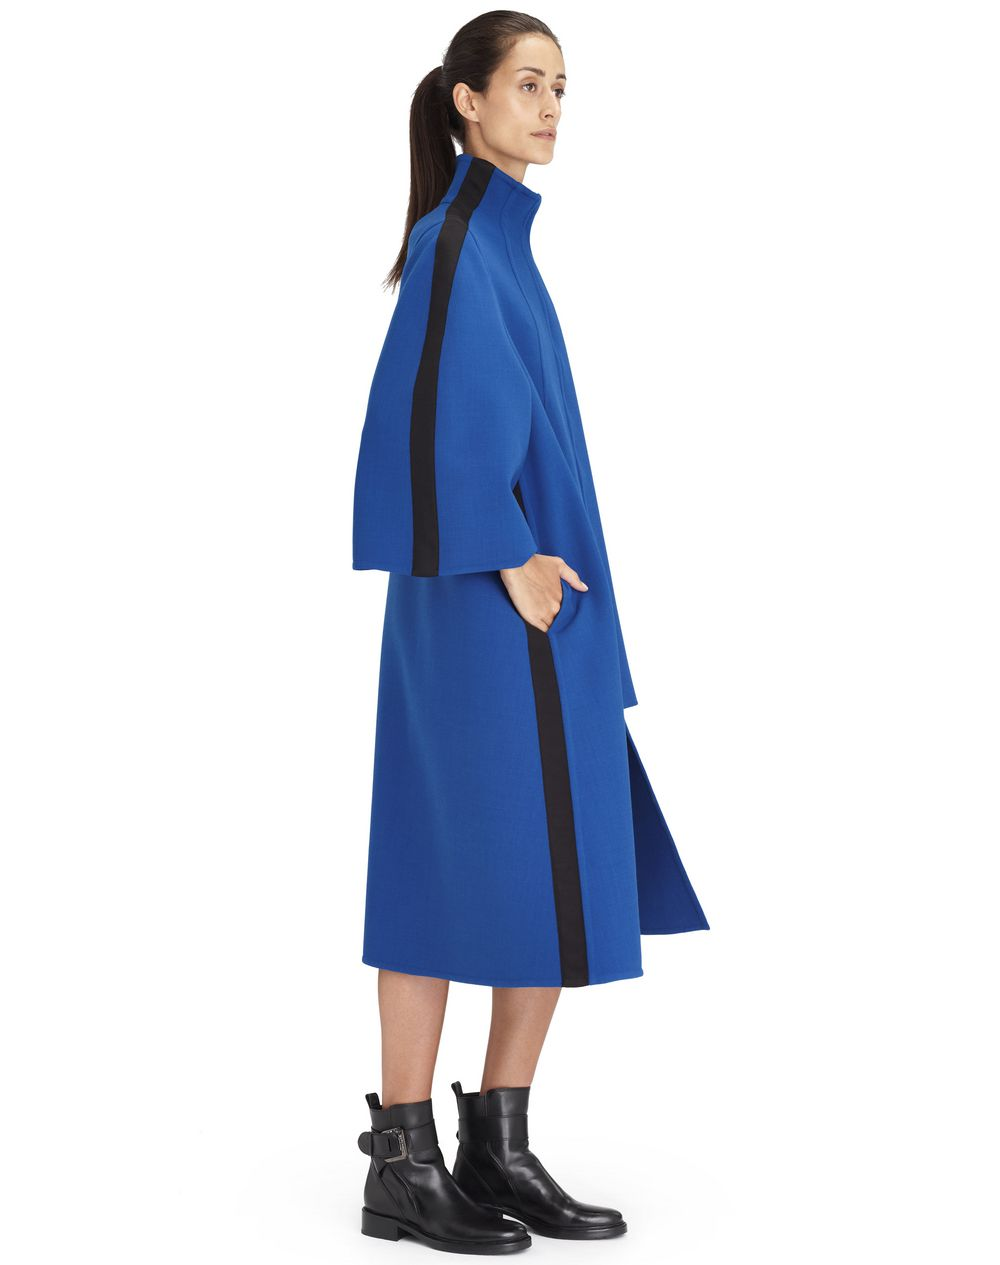 LONG INDIGO BLUE COAT - Lanvin